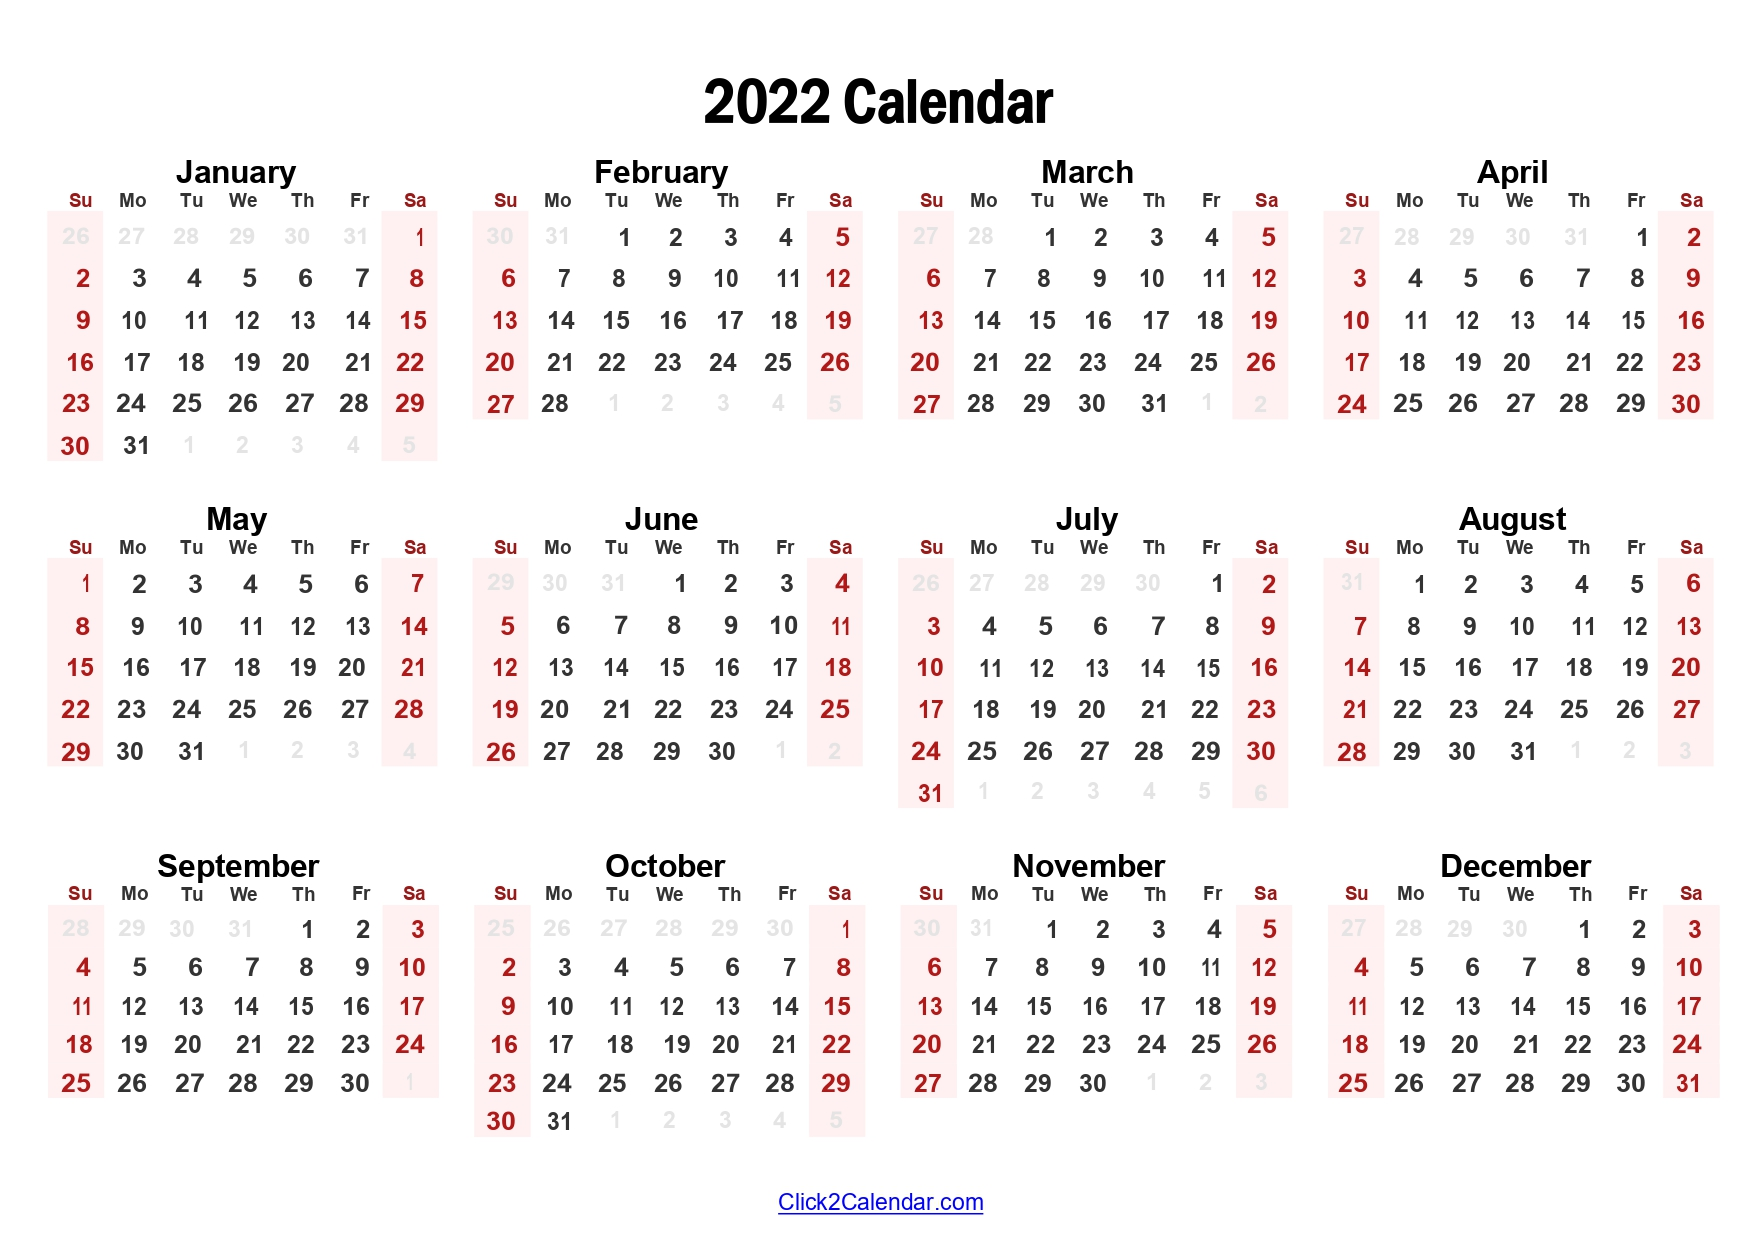 2022 Yearly Calendar Ready to Print